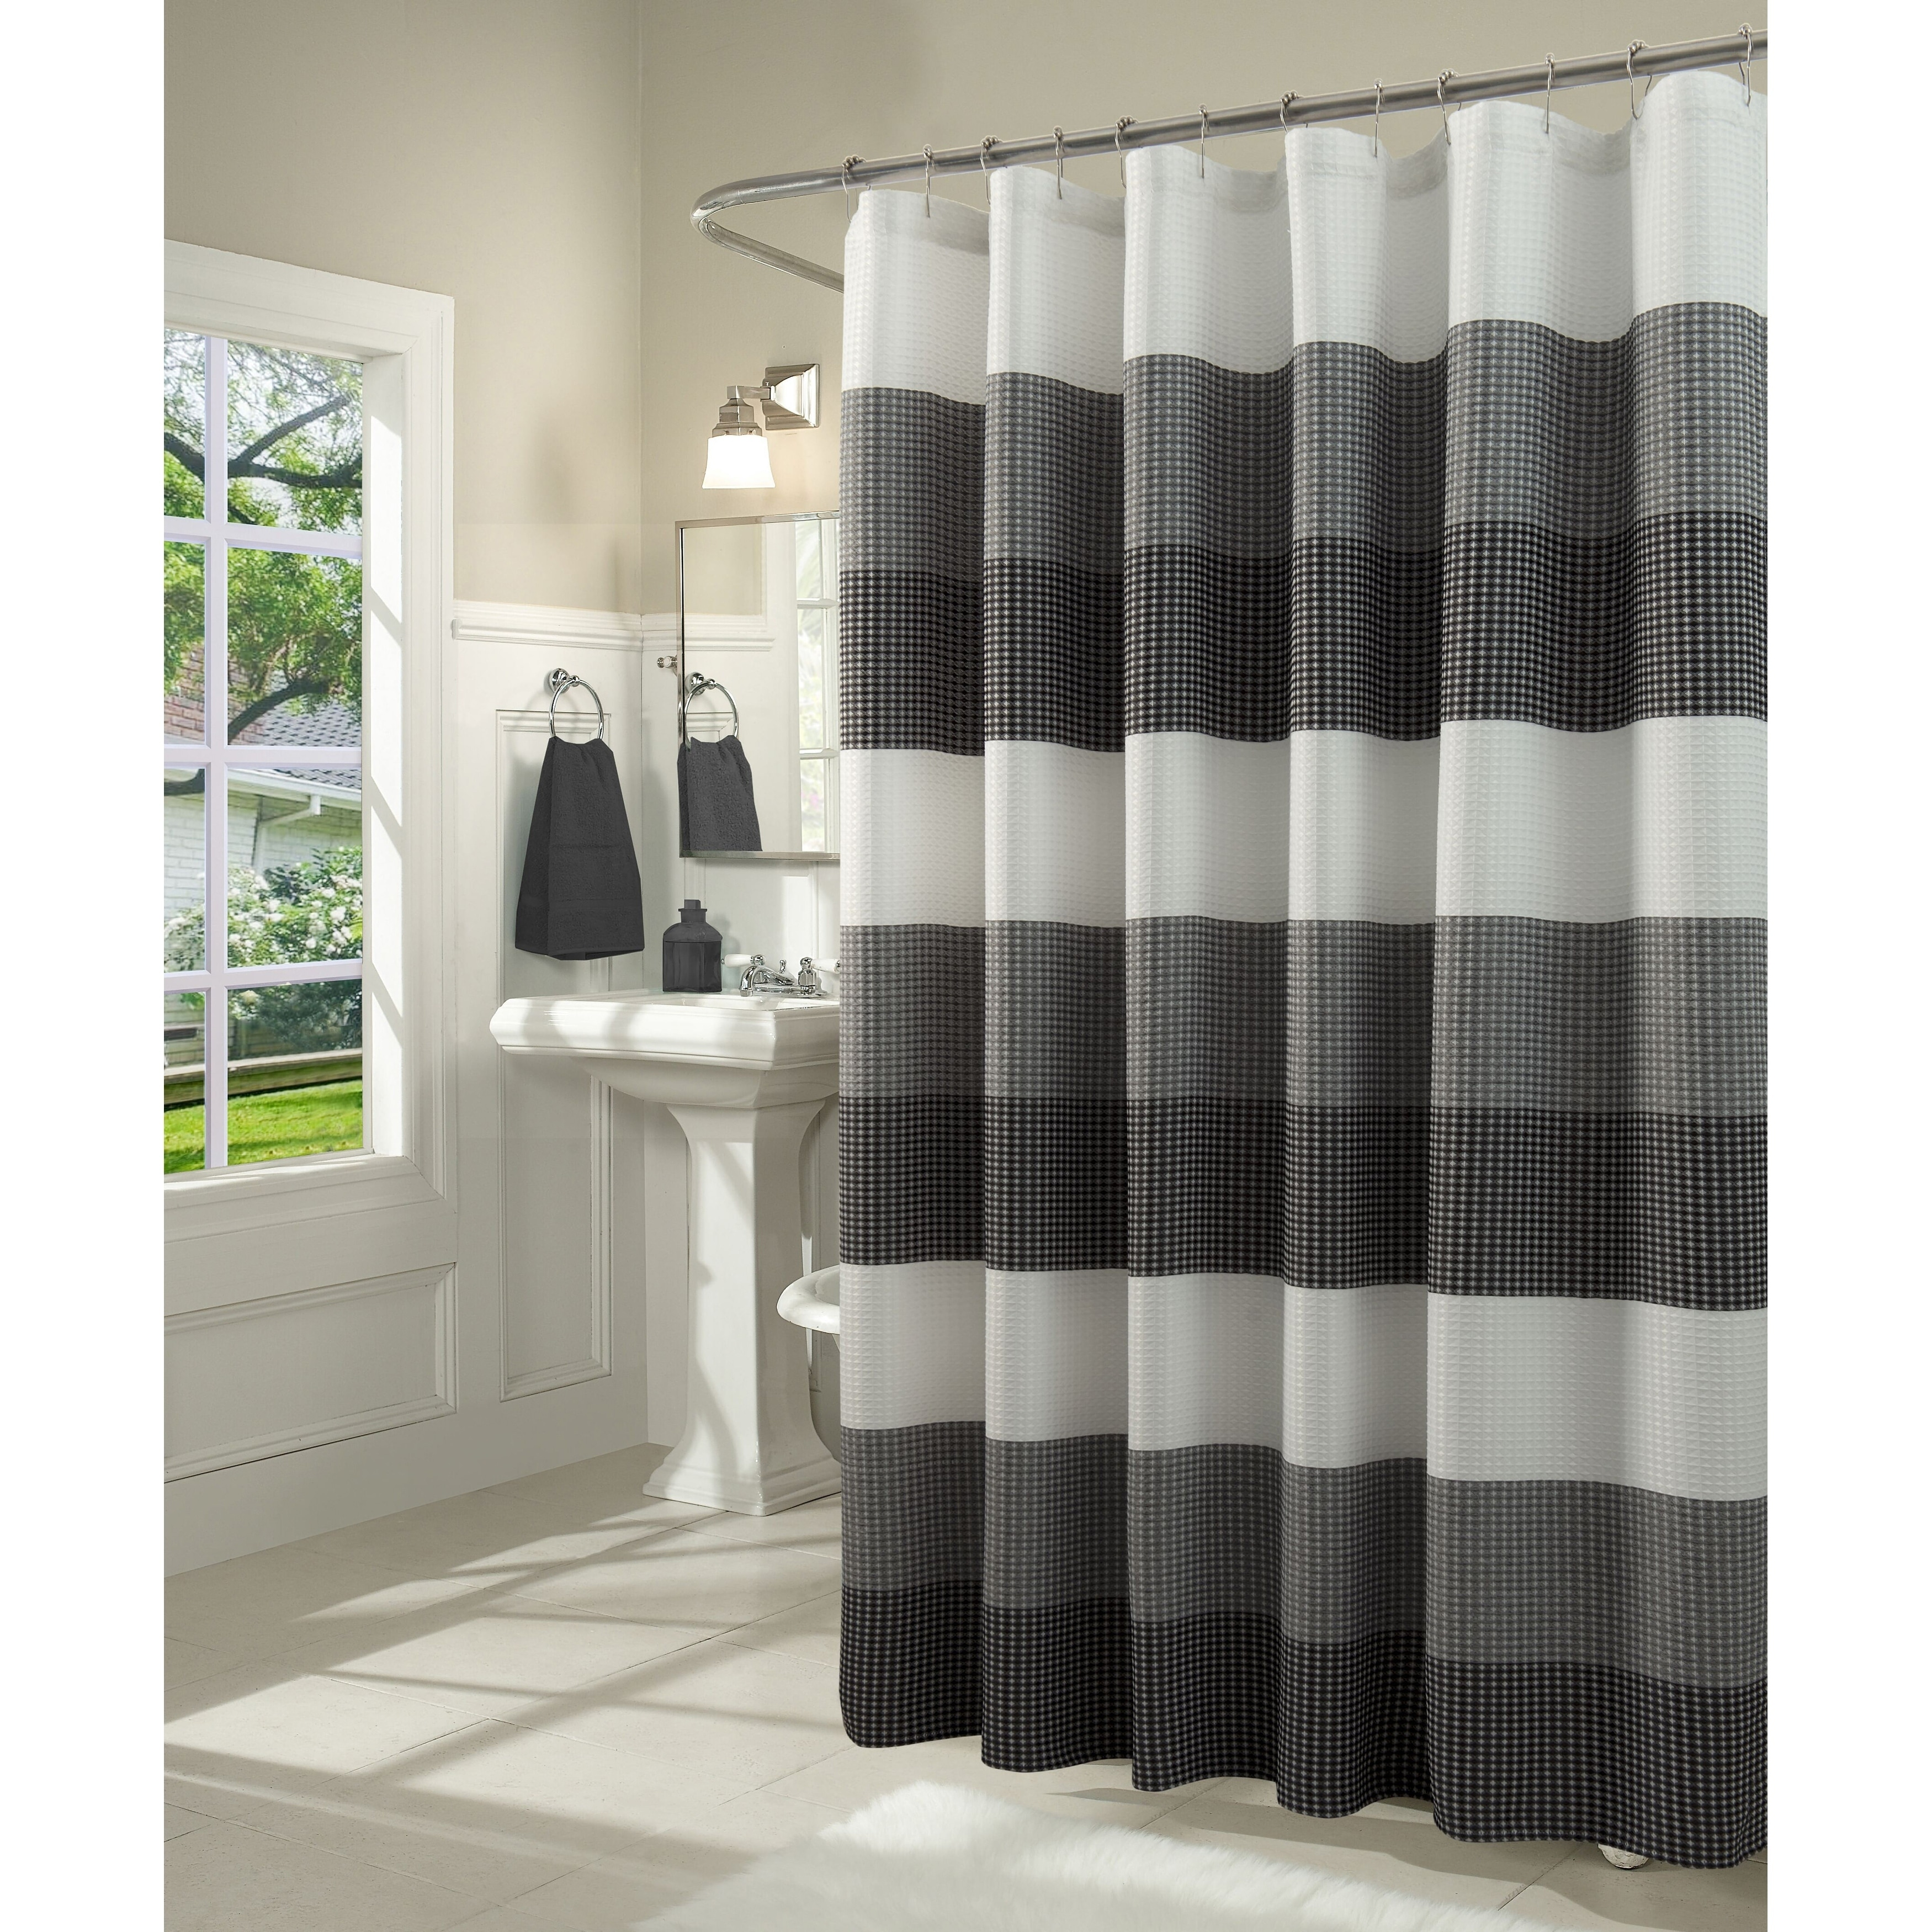 Striped Shower Curtains Find Great Shower Curtains